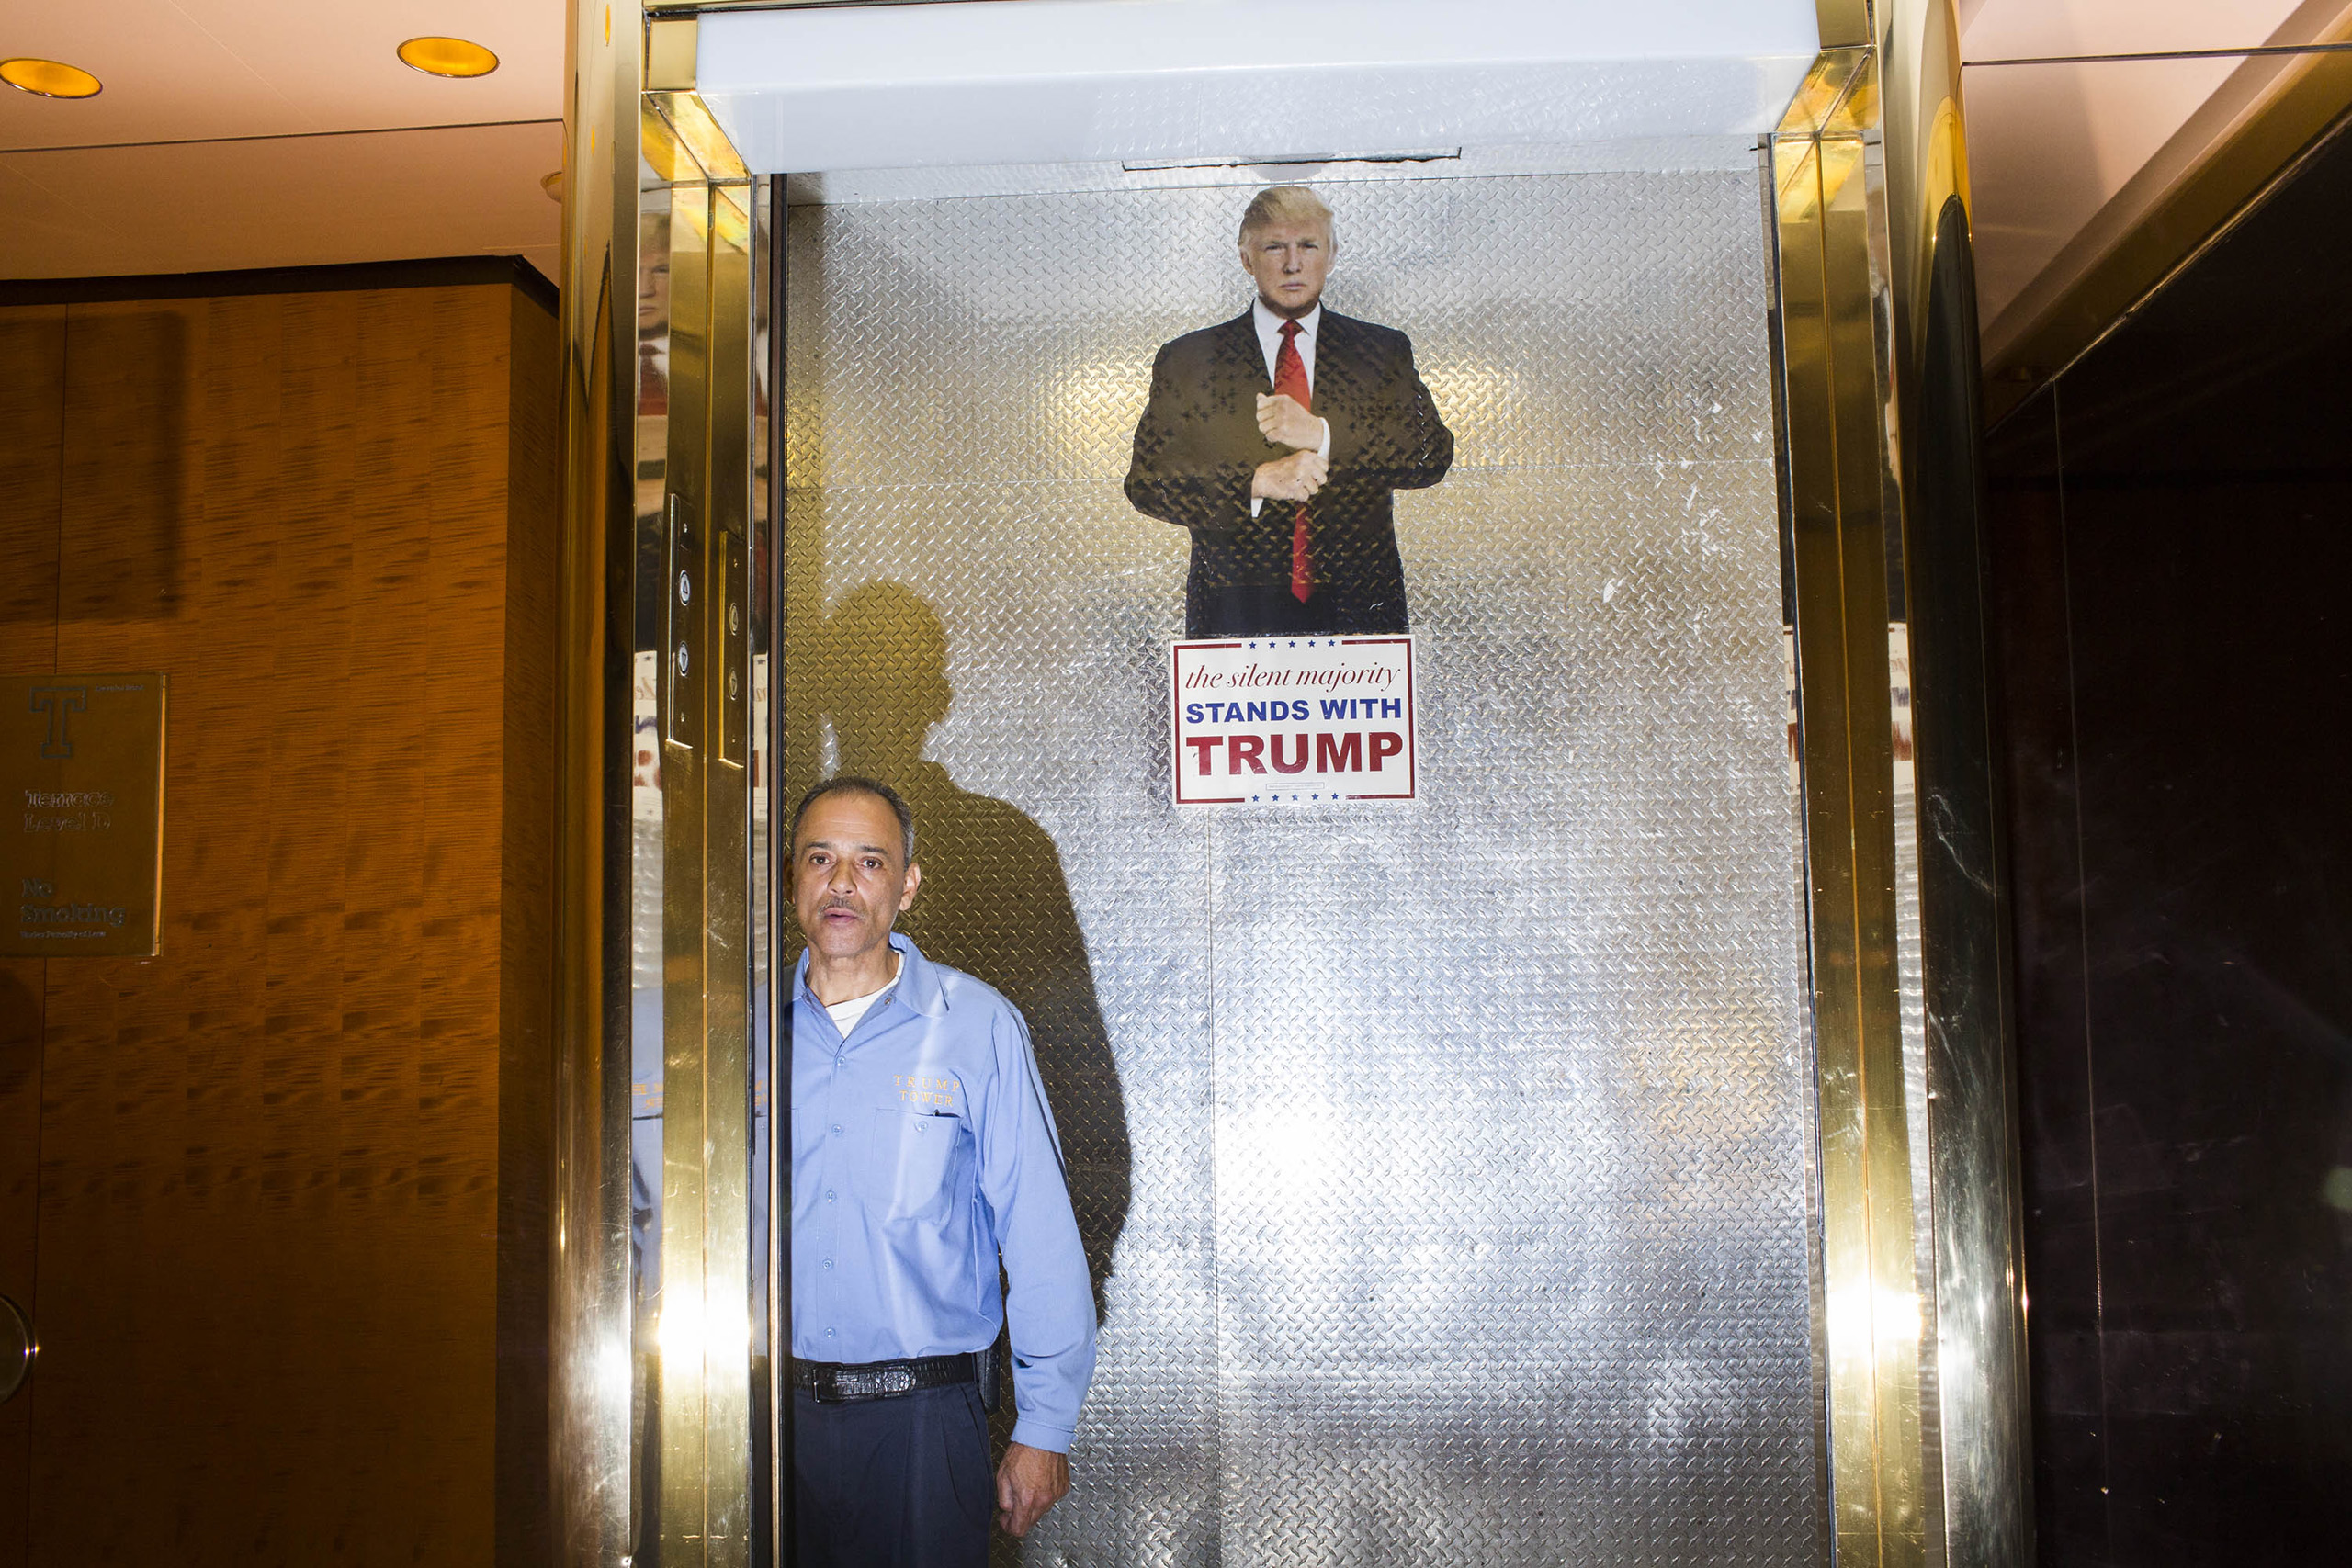 The freight elevator inside the campaign headquarters of Donald Trump on May 24, 2016, in Trump Tower, New York City.